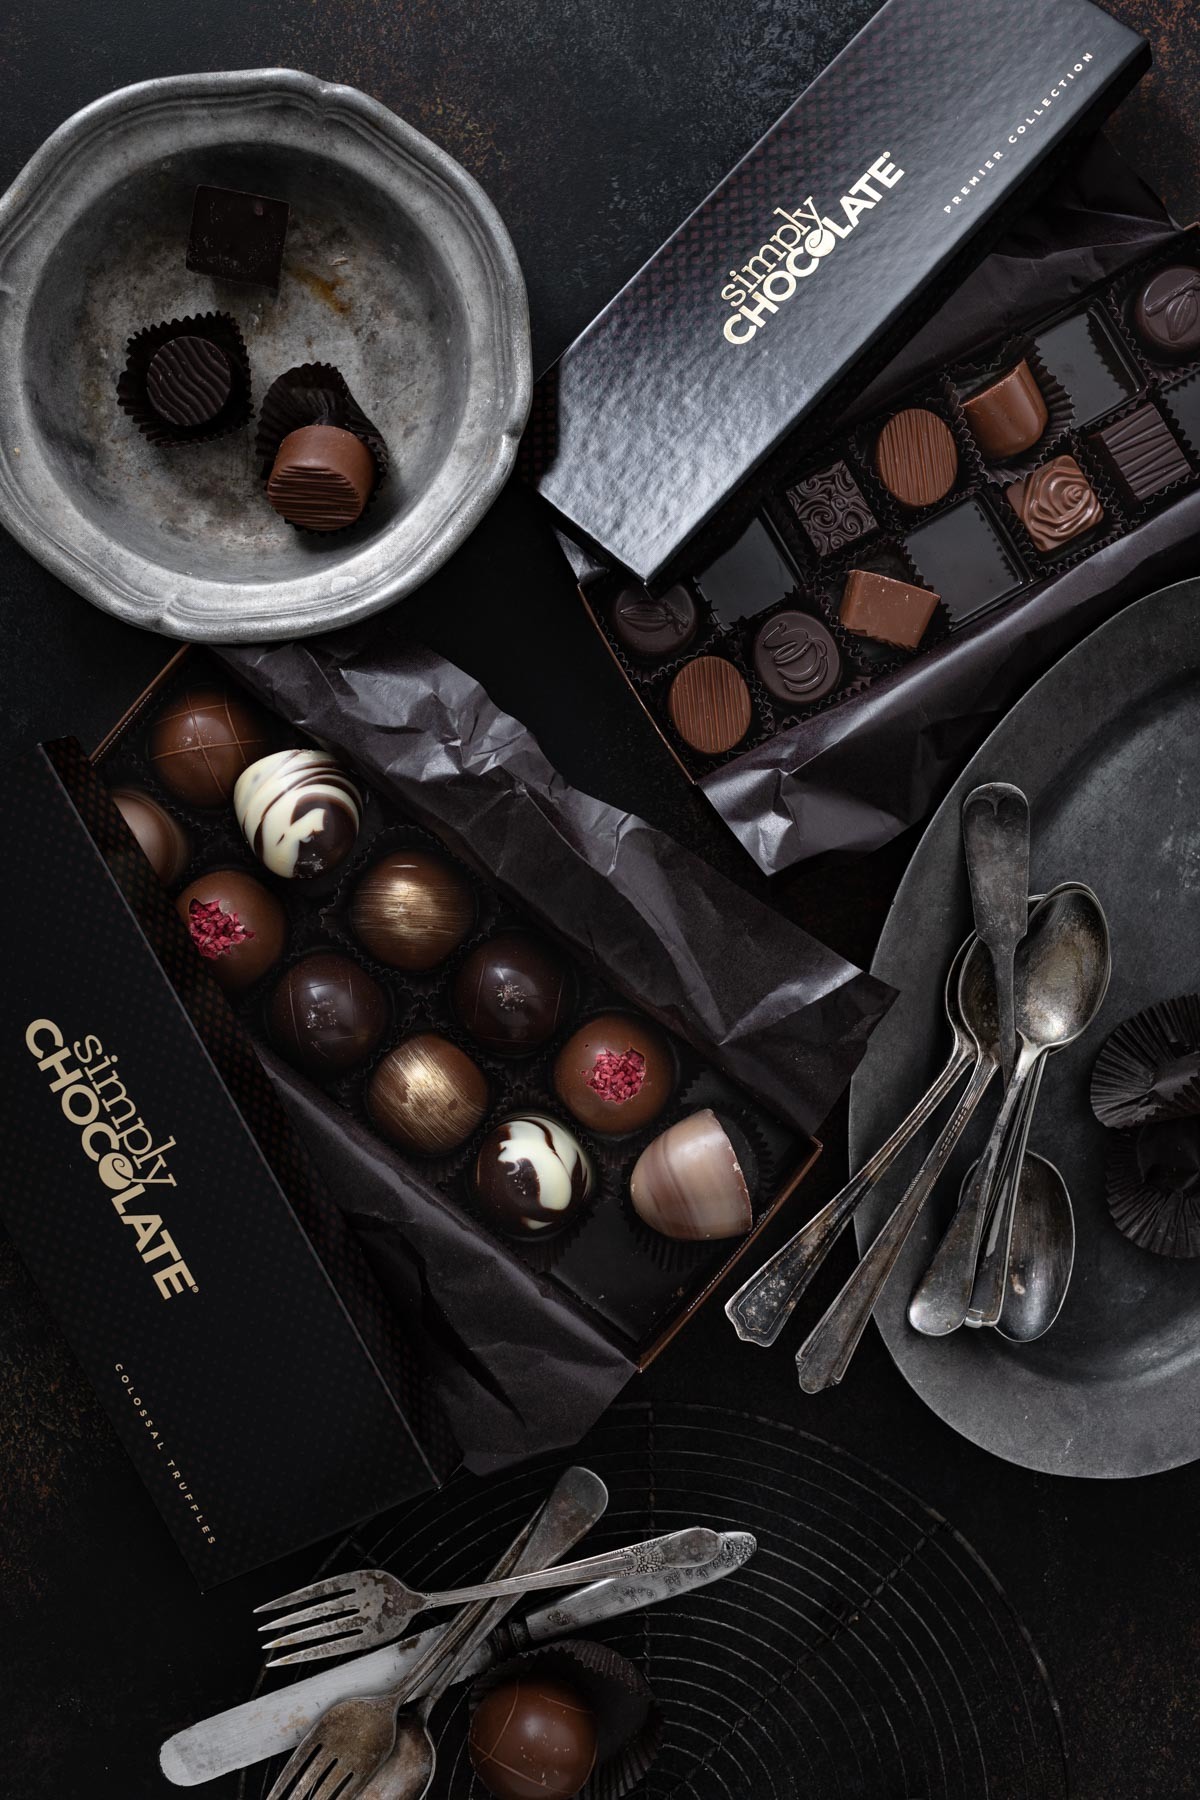 Box of Simply chocolate truffles for cookies.